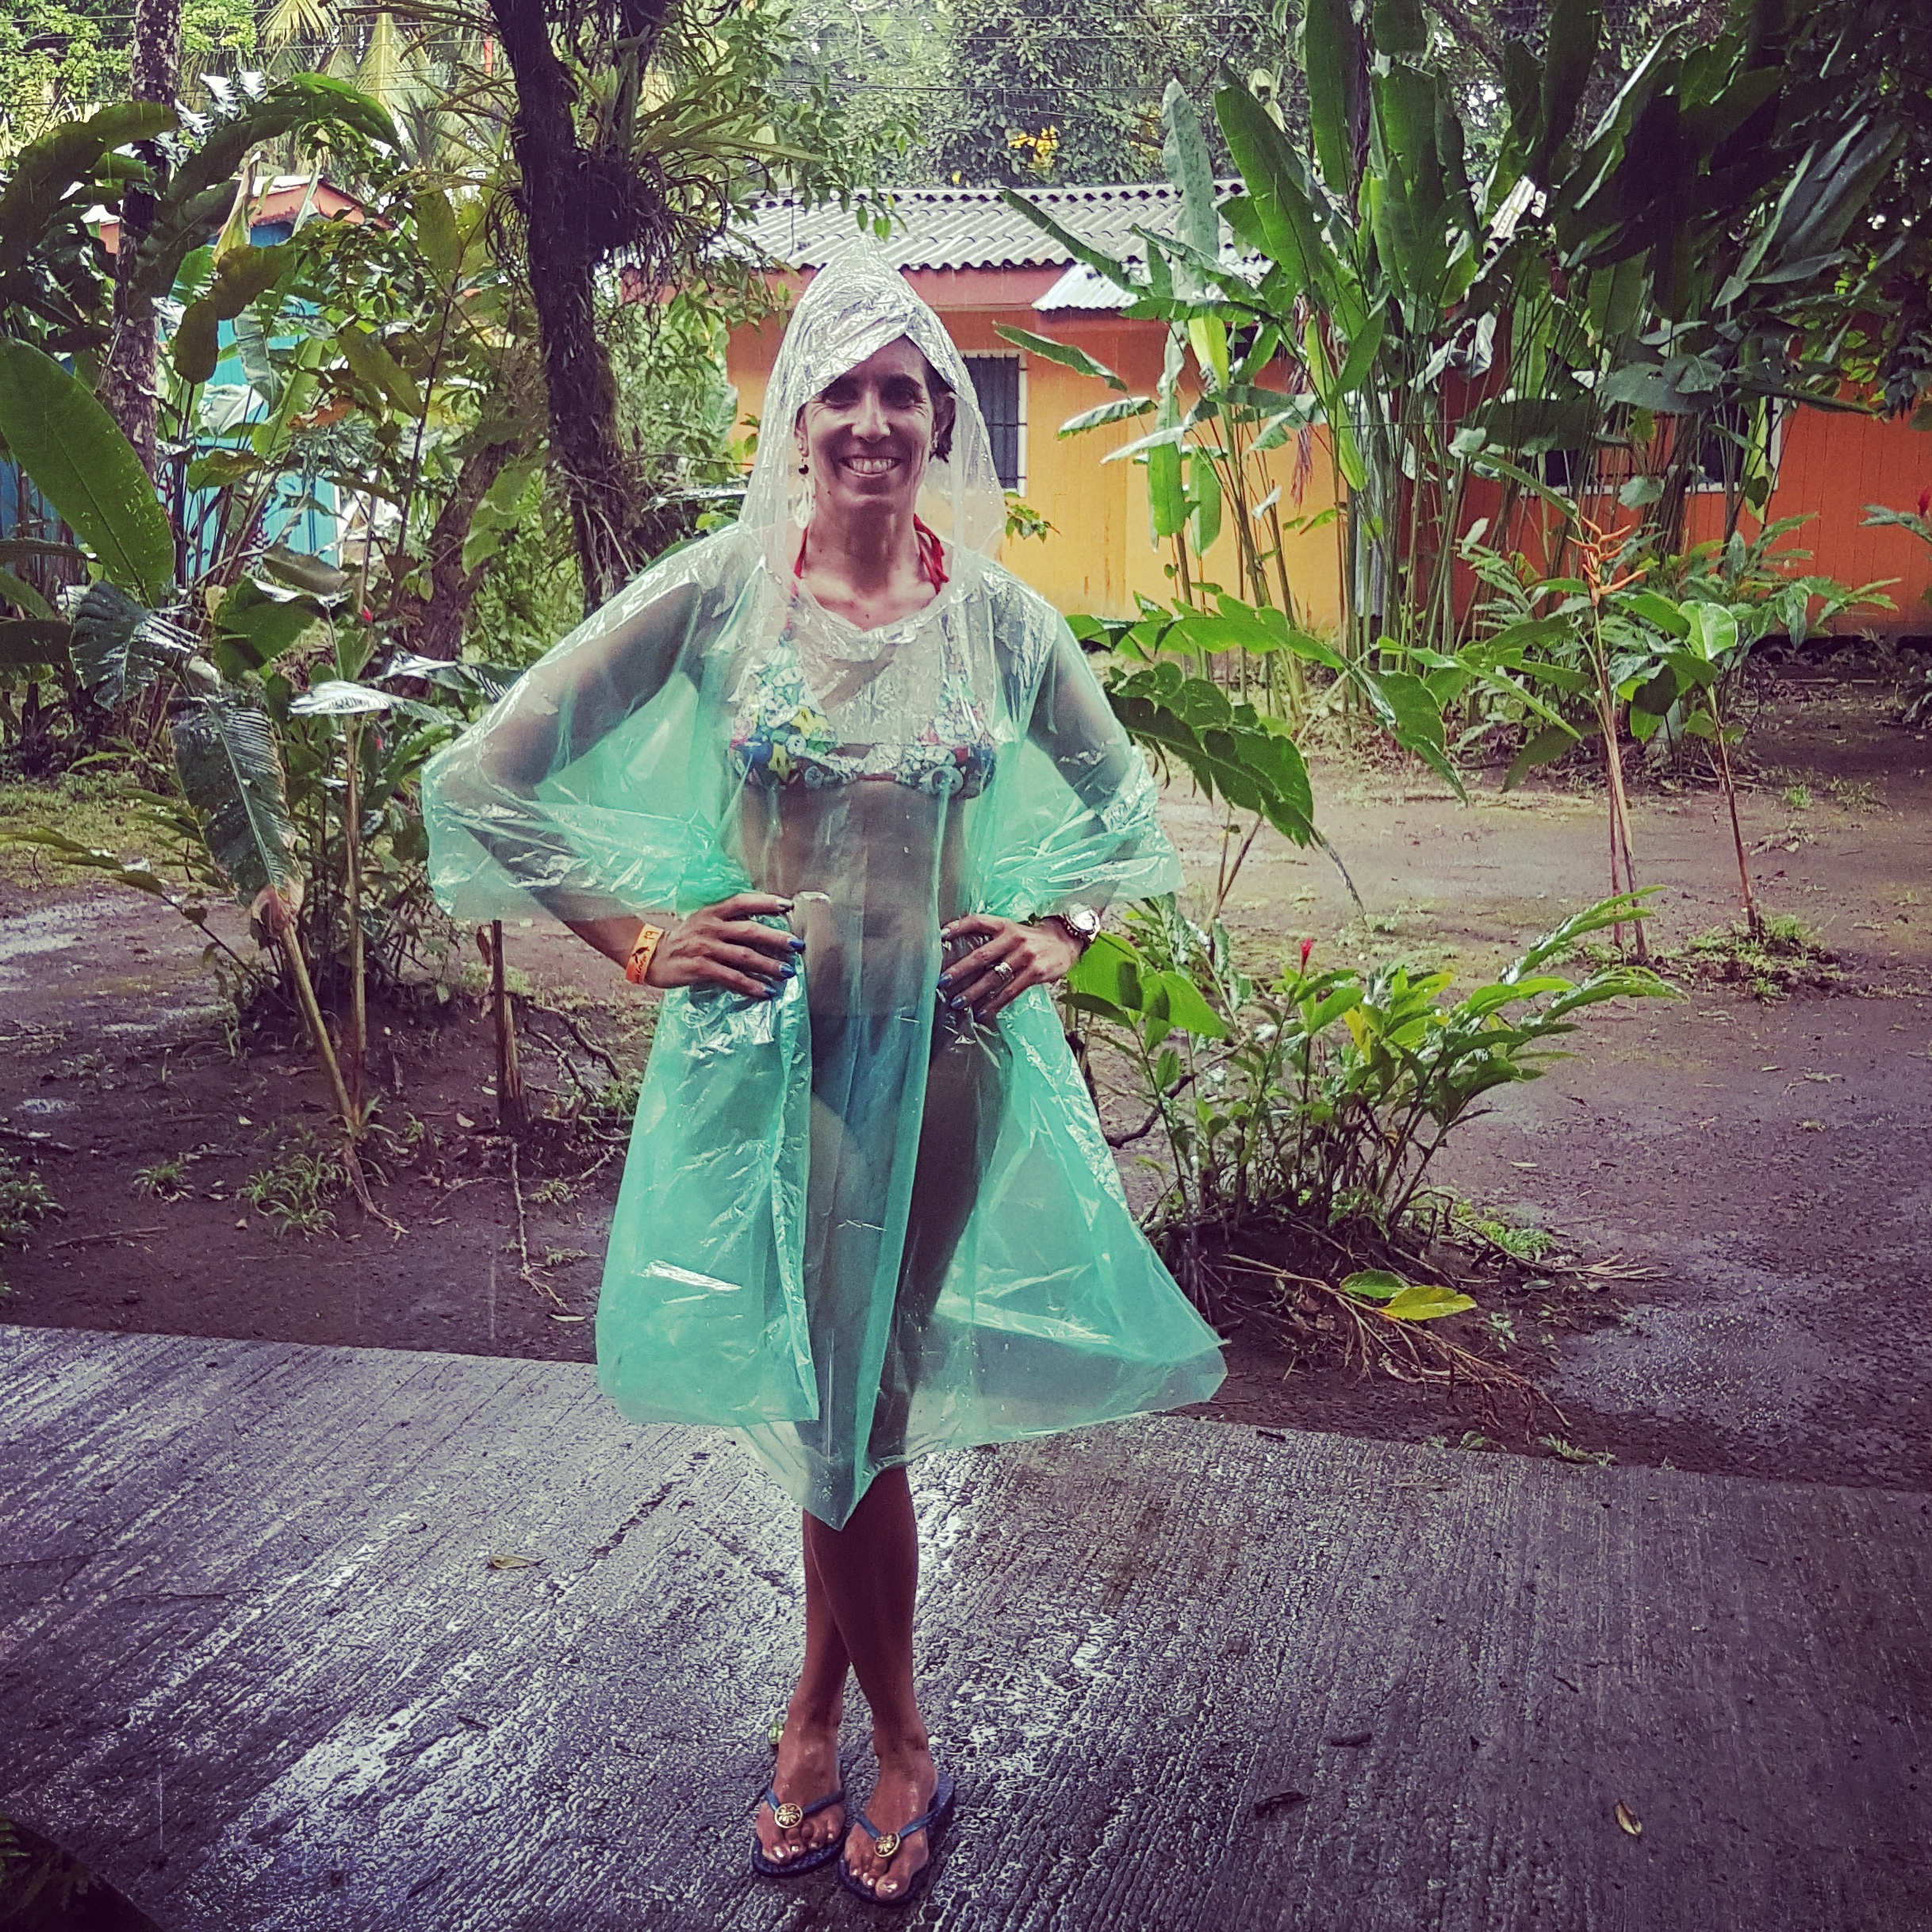 Introducing the rainforest's high fashion! A MUST have item when travelling around Costa Rica